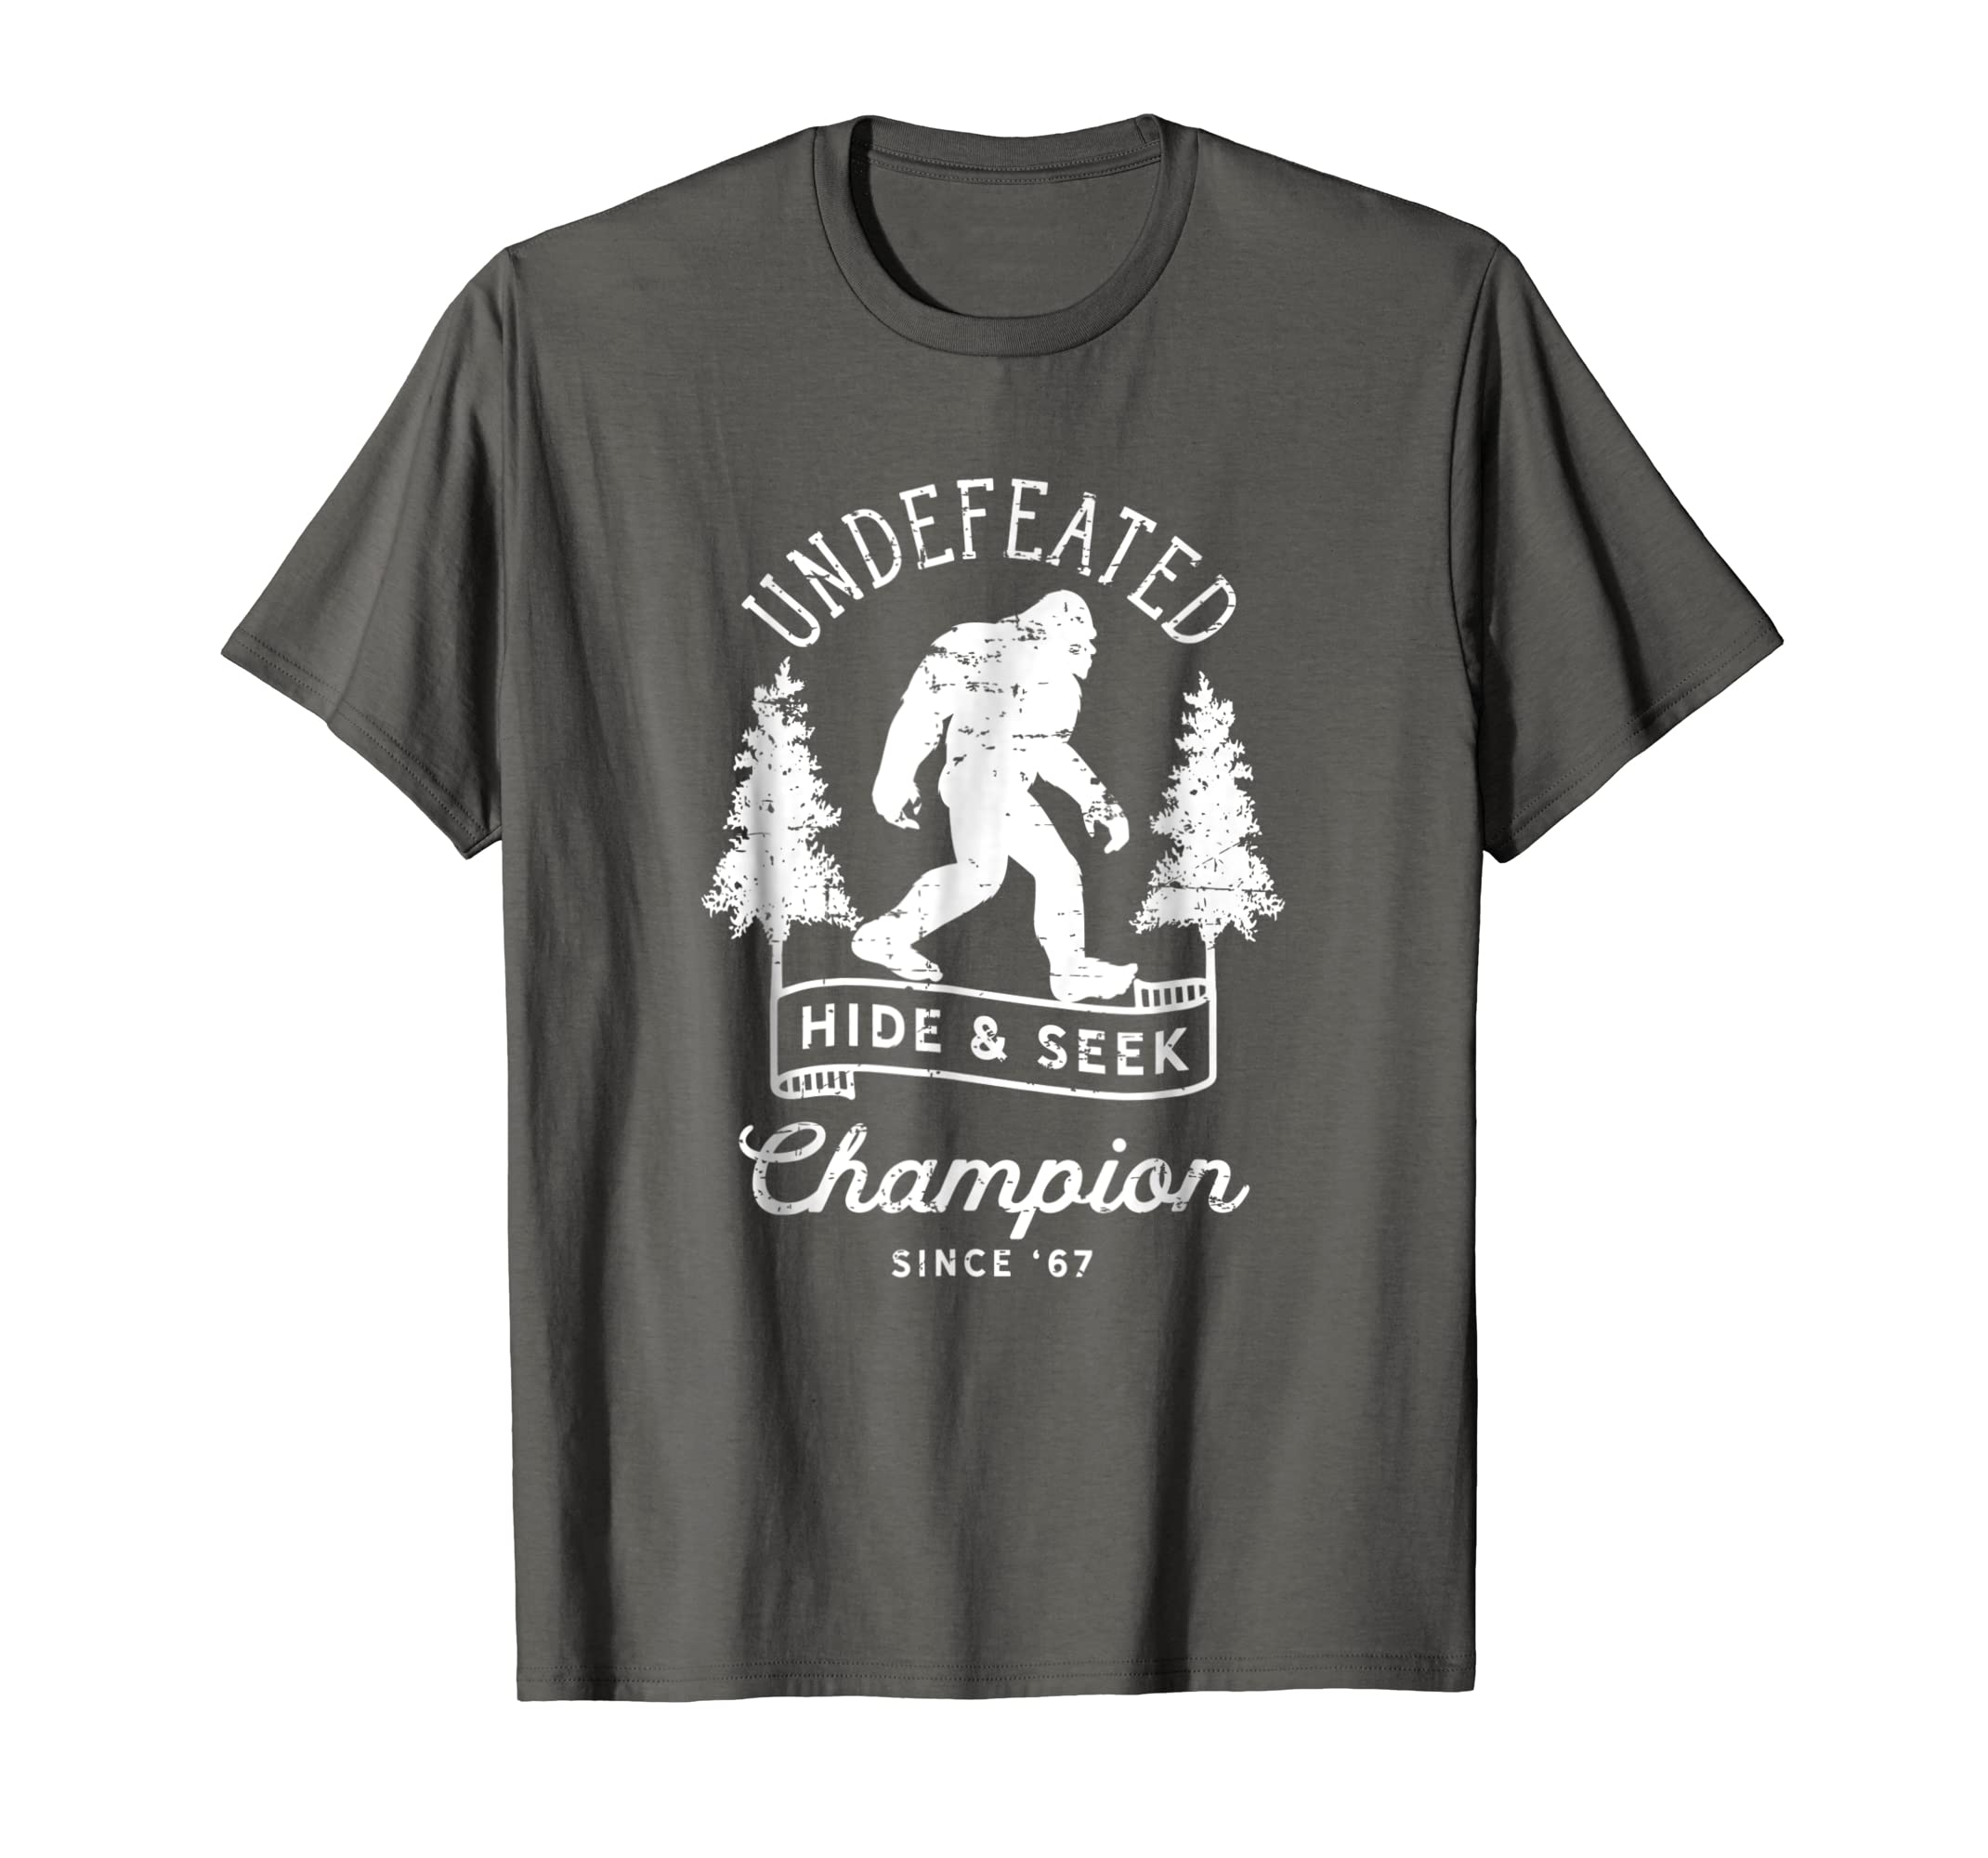 60fdeeb0 Amazon.com: Bigfoot Undefeated Hide and Seek Champion Distressed T-Shirt:  Clothing